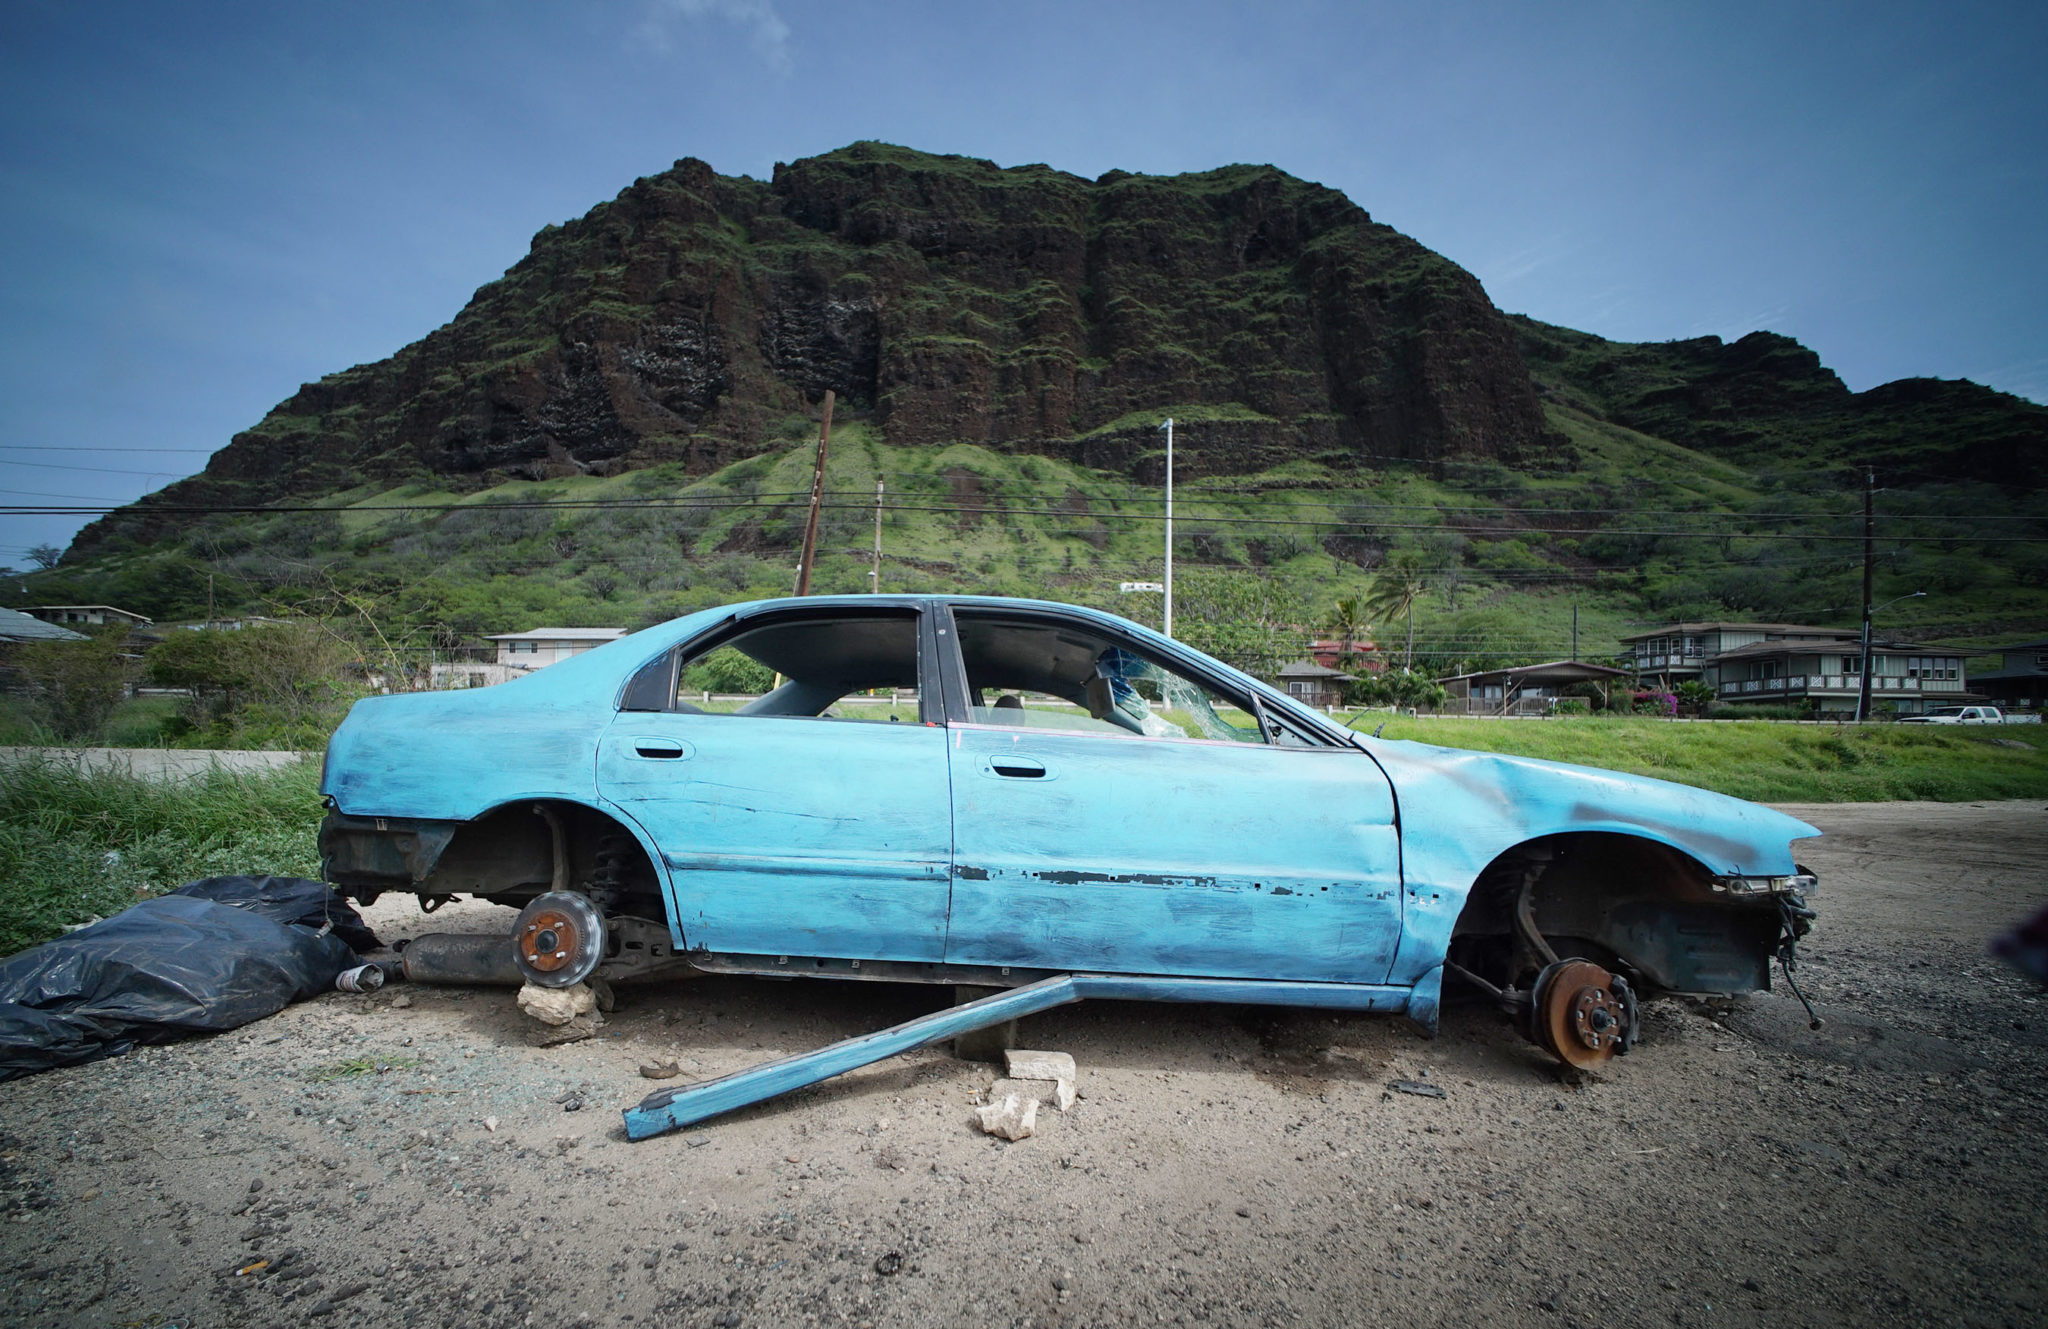 <p>Oahu's west side is no stranger to the unsightliness, which includes this vehicle near the Farrington Highway in Nanakuli with Puu Ohulu in the background.</p>